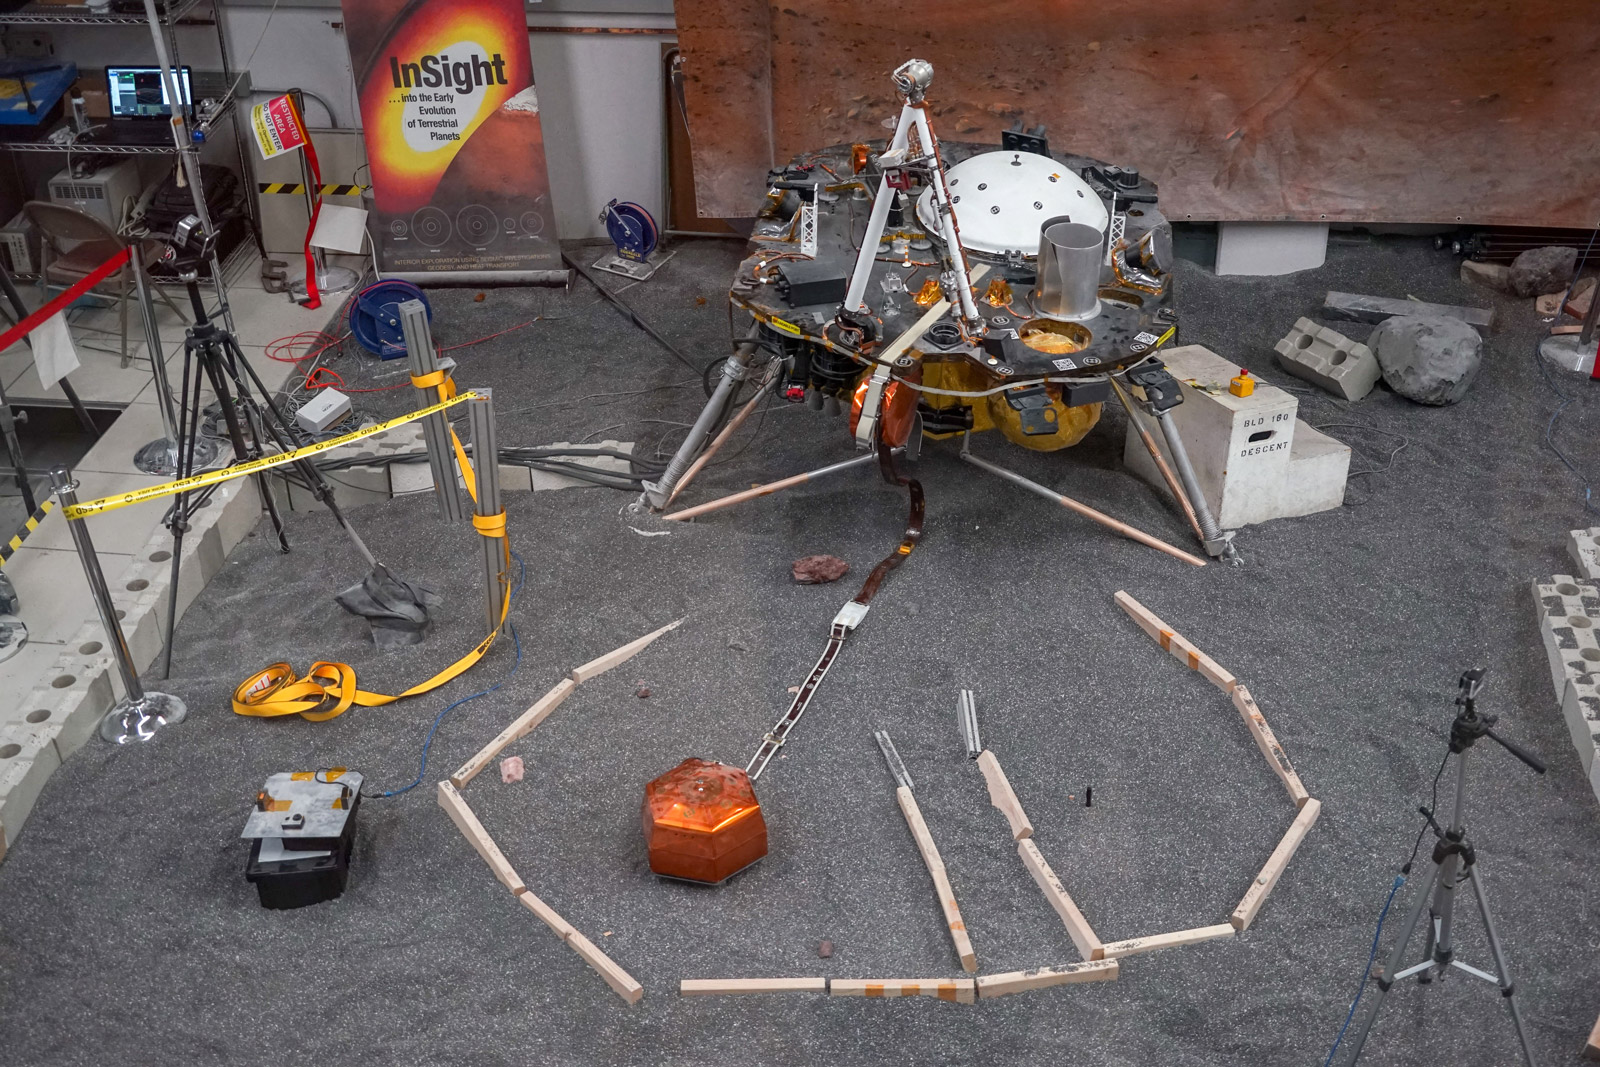 ForeSight, a fully functional, full-size model of NASA's InSight lander, sits in a lab space that has been sculpted to match terrain in front of the real lander on Mars. This work was done at NASA's Jet Propulsion Laboratory in Pasadena, California.